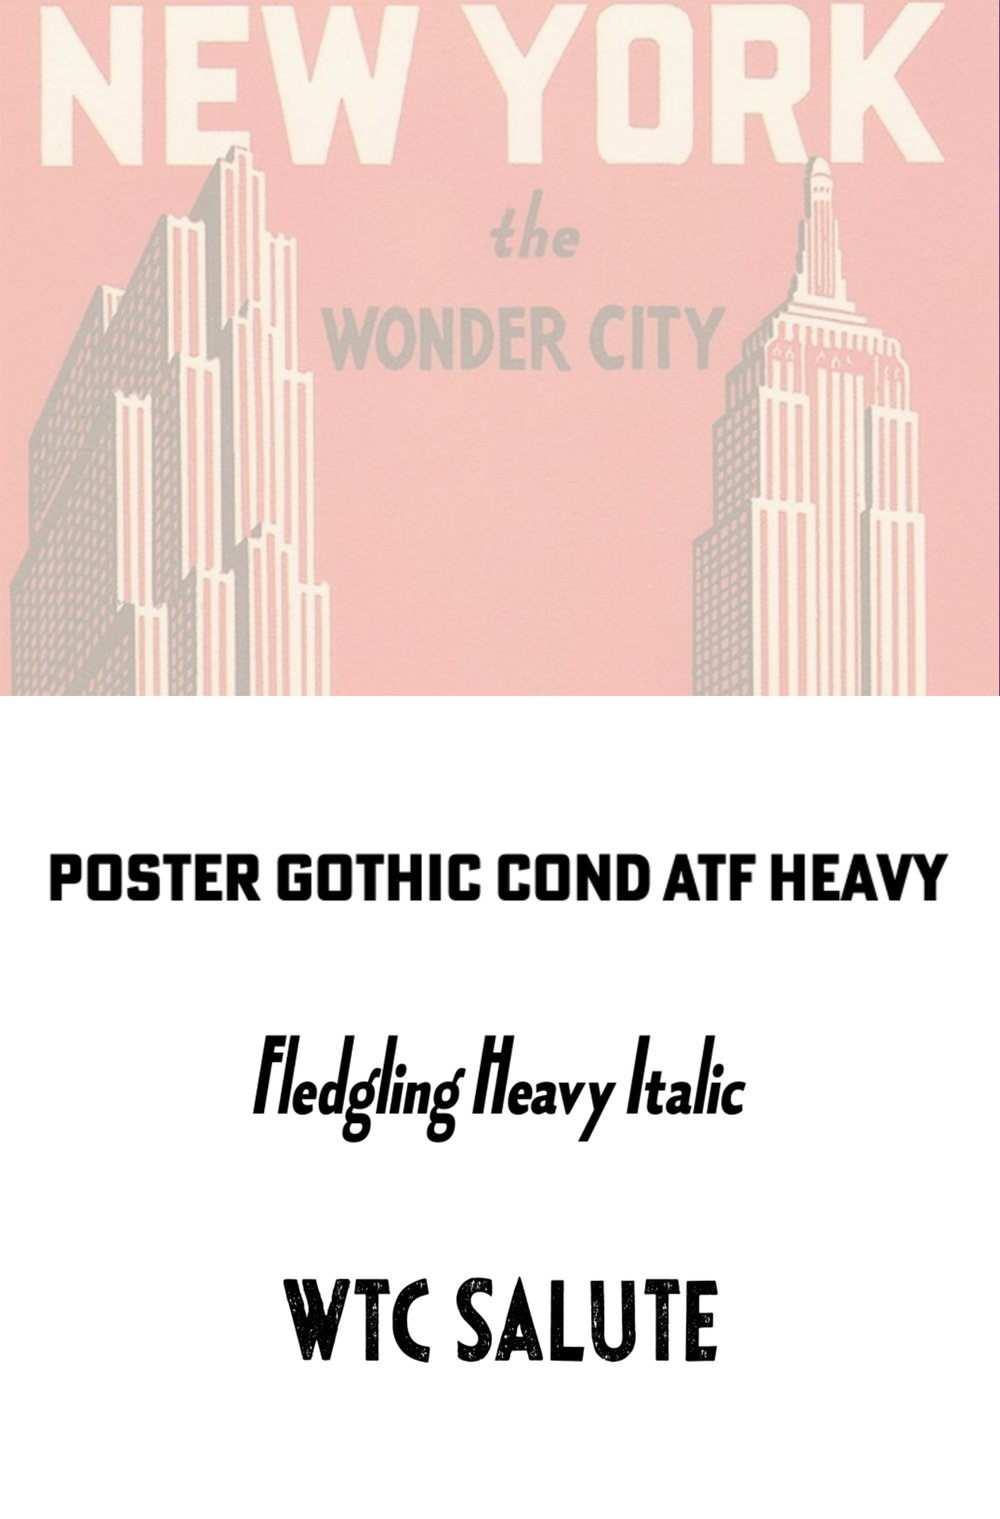 NEW YORK the WONDER CITY | Typography Analysis